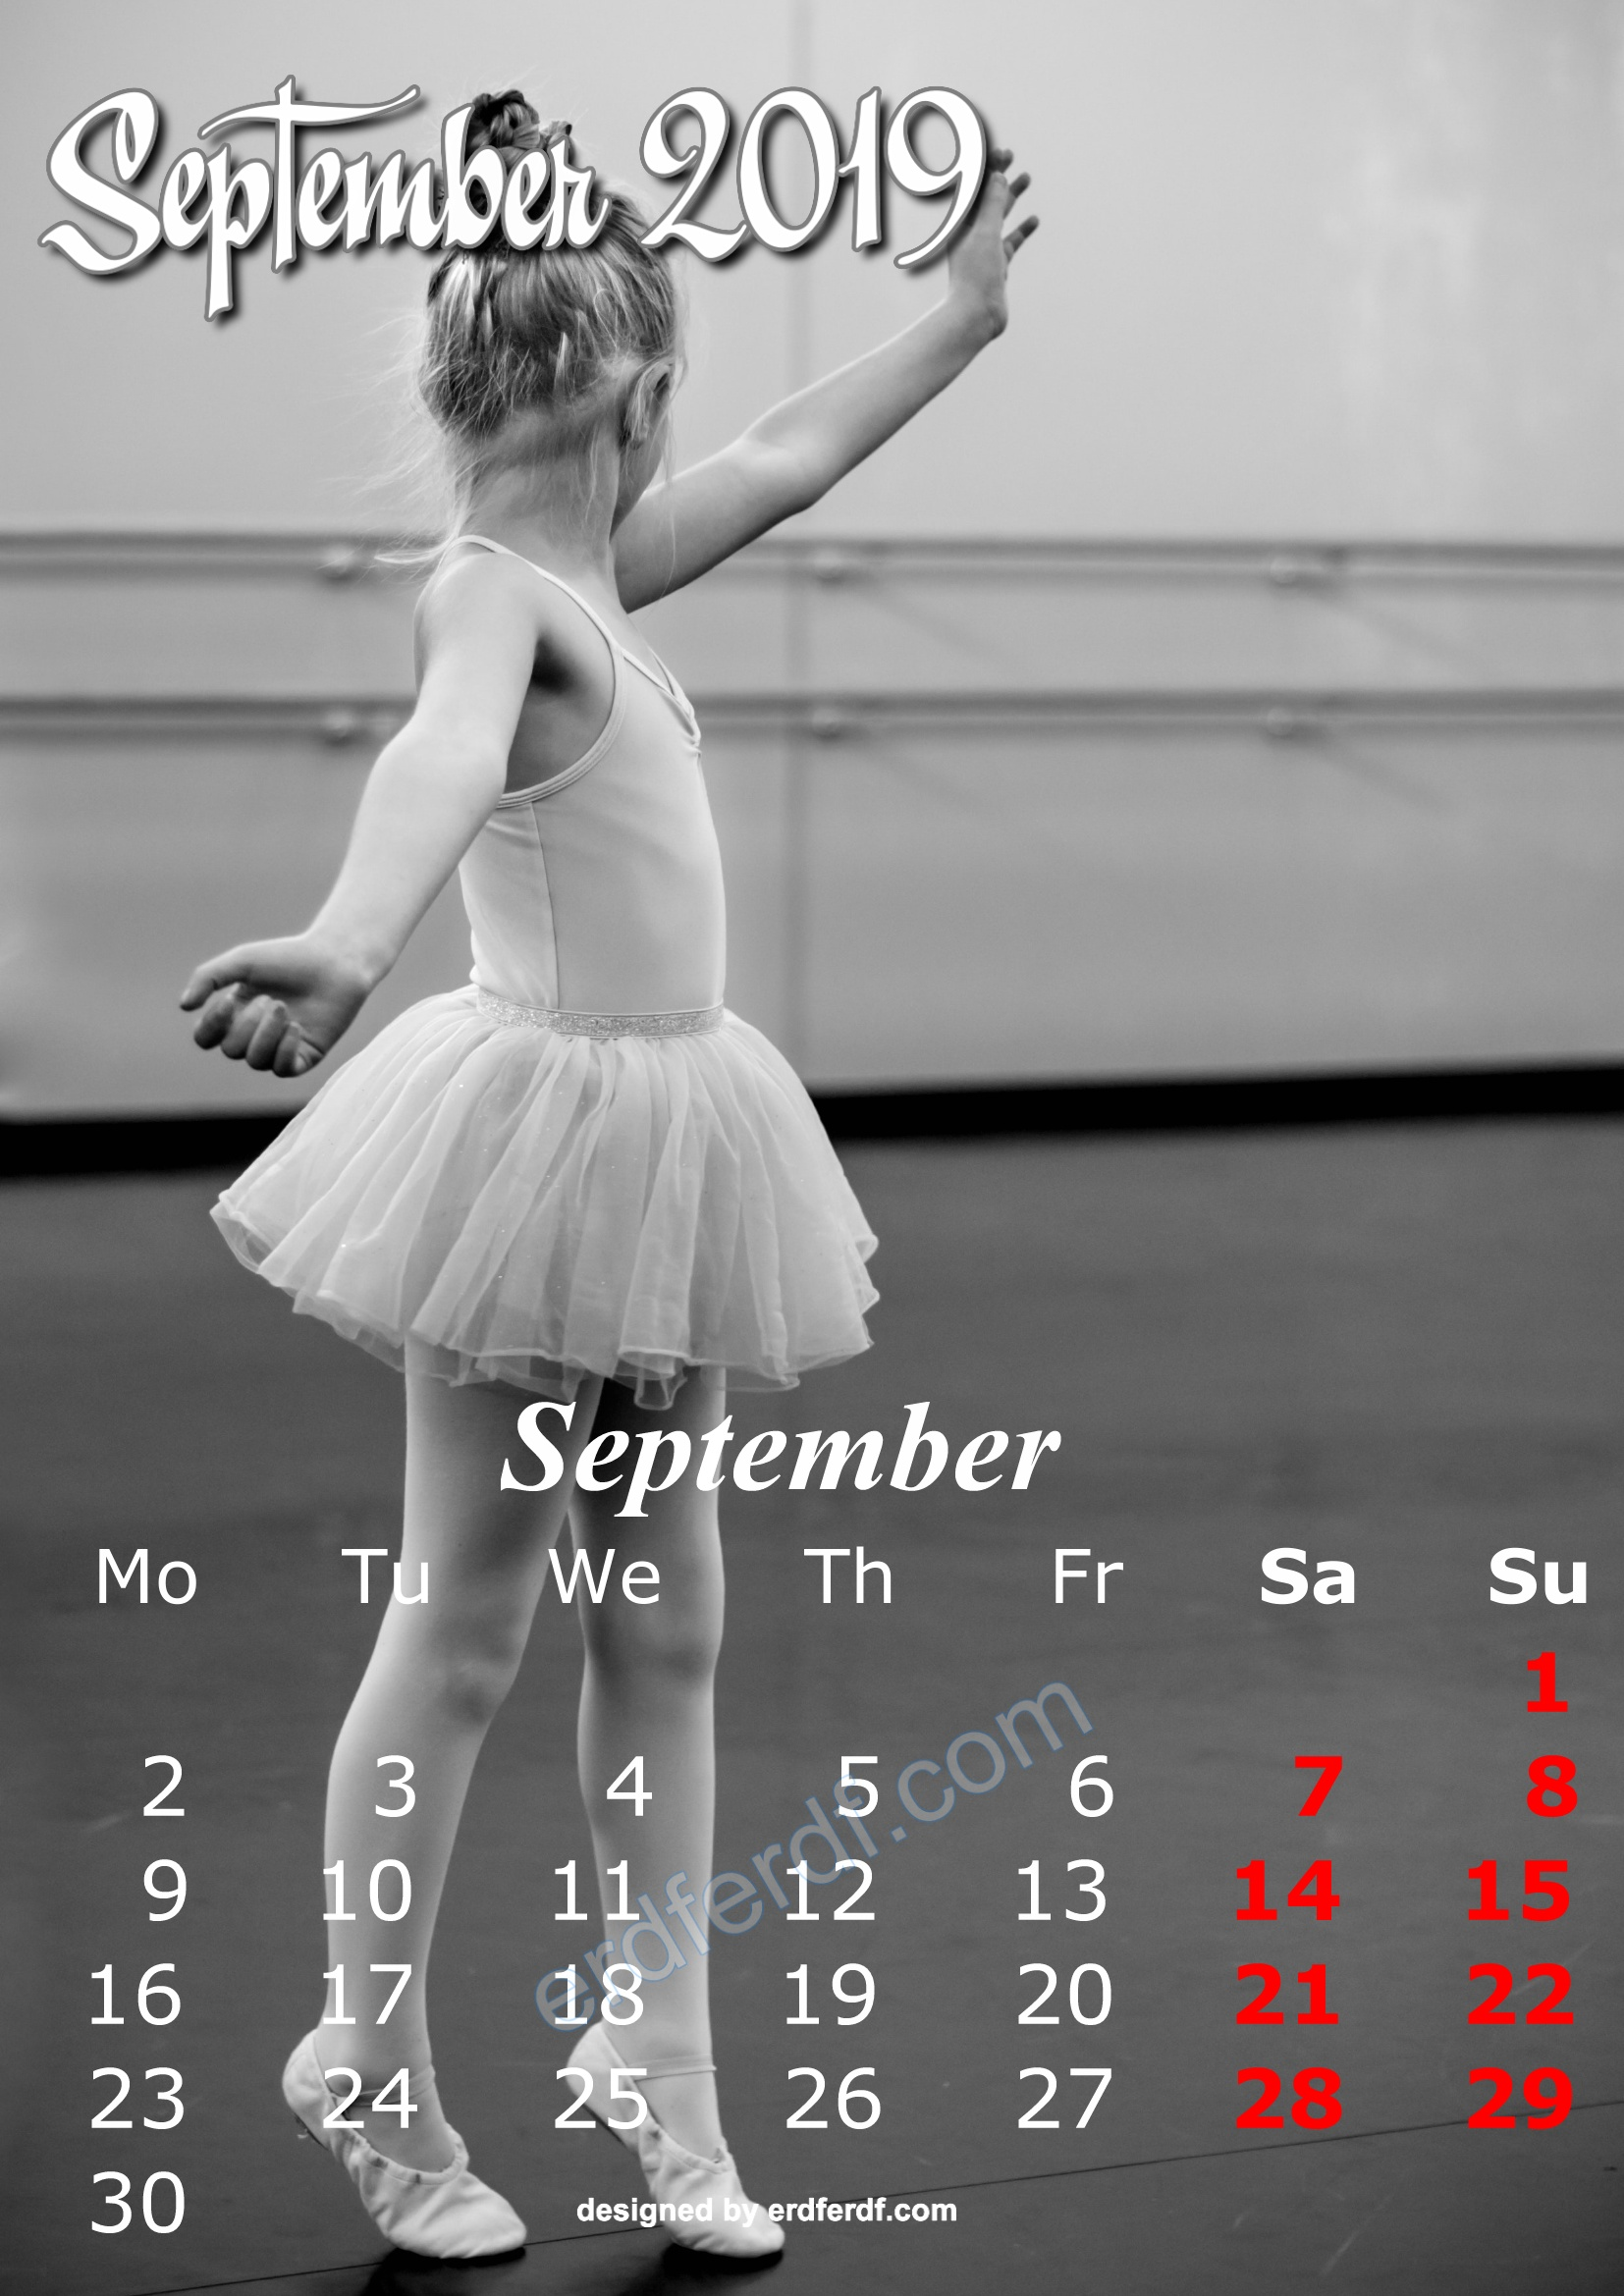 9 September Cute Kids Calendar 2019 Printable Free Design